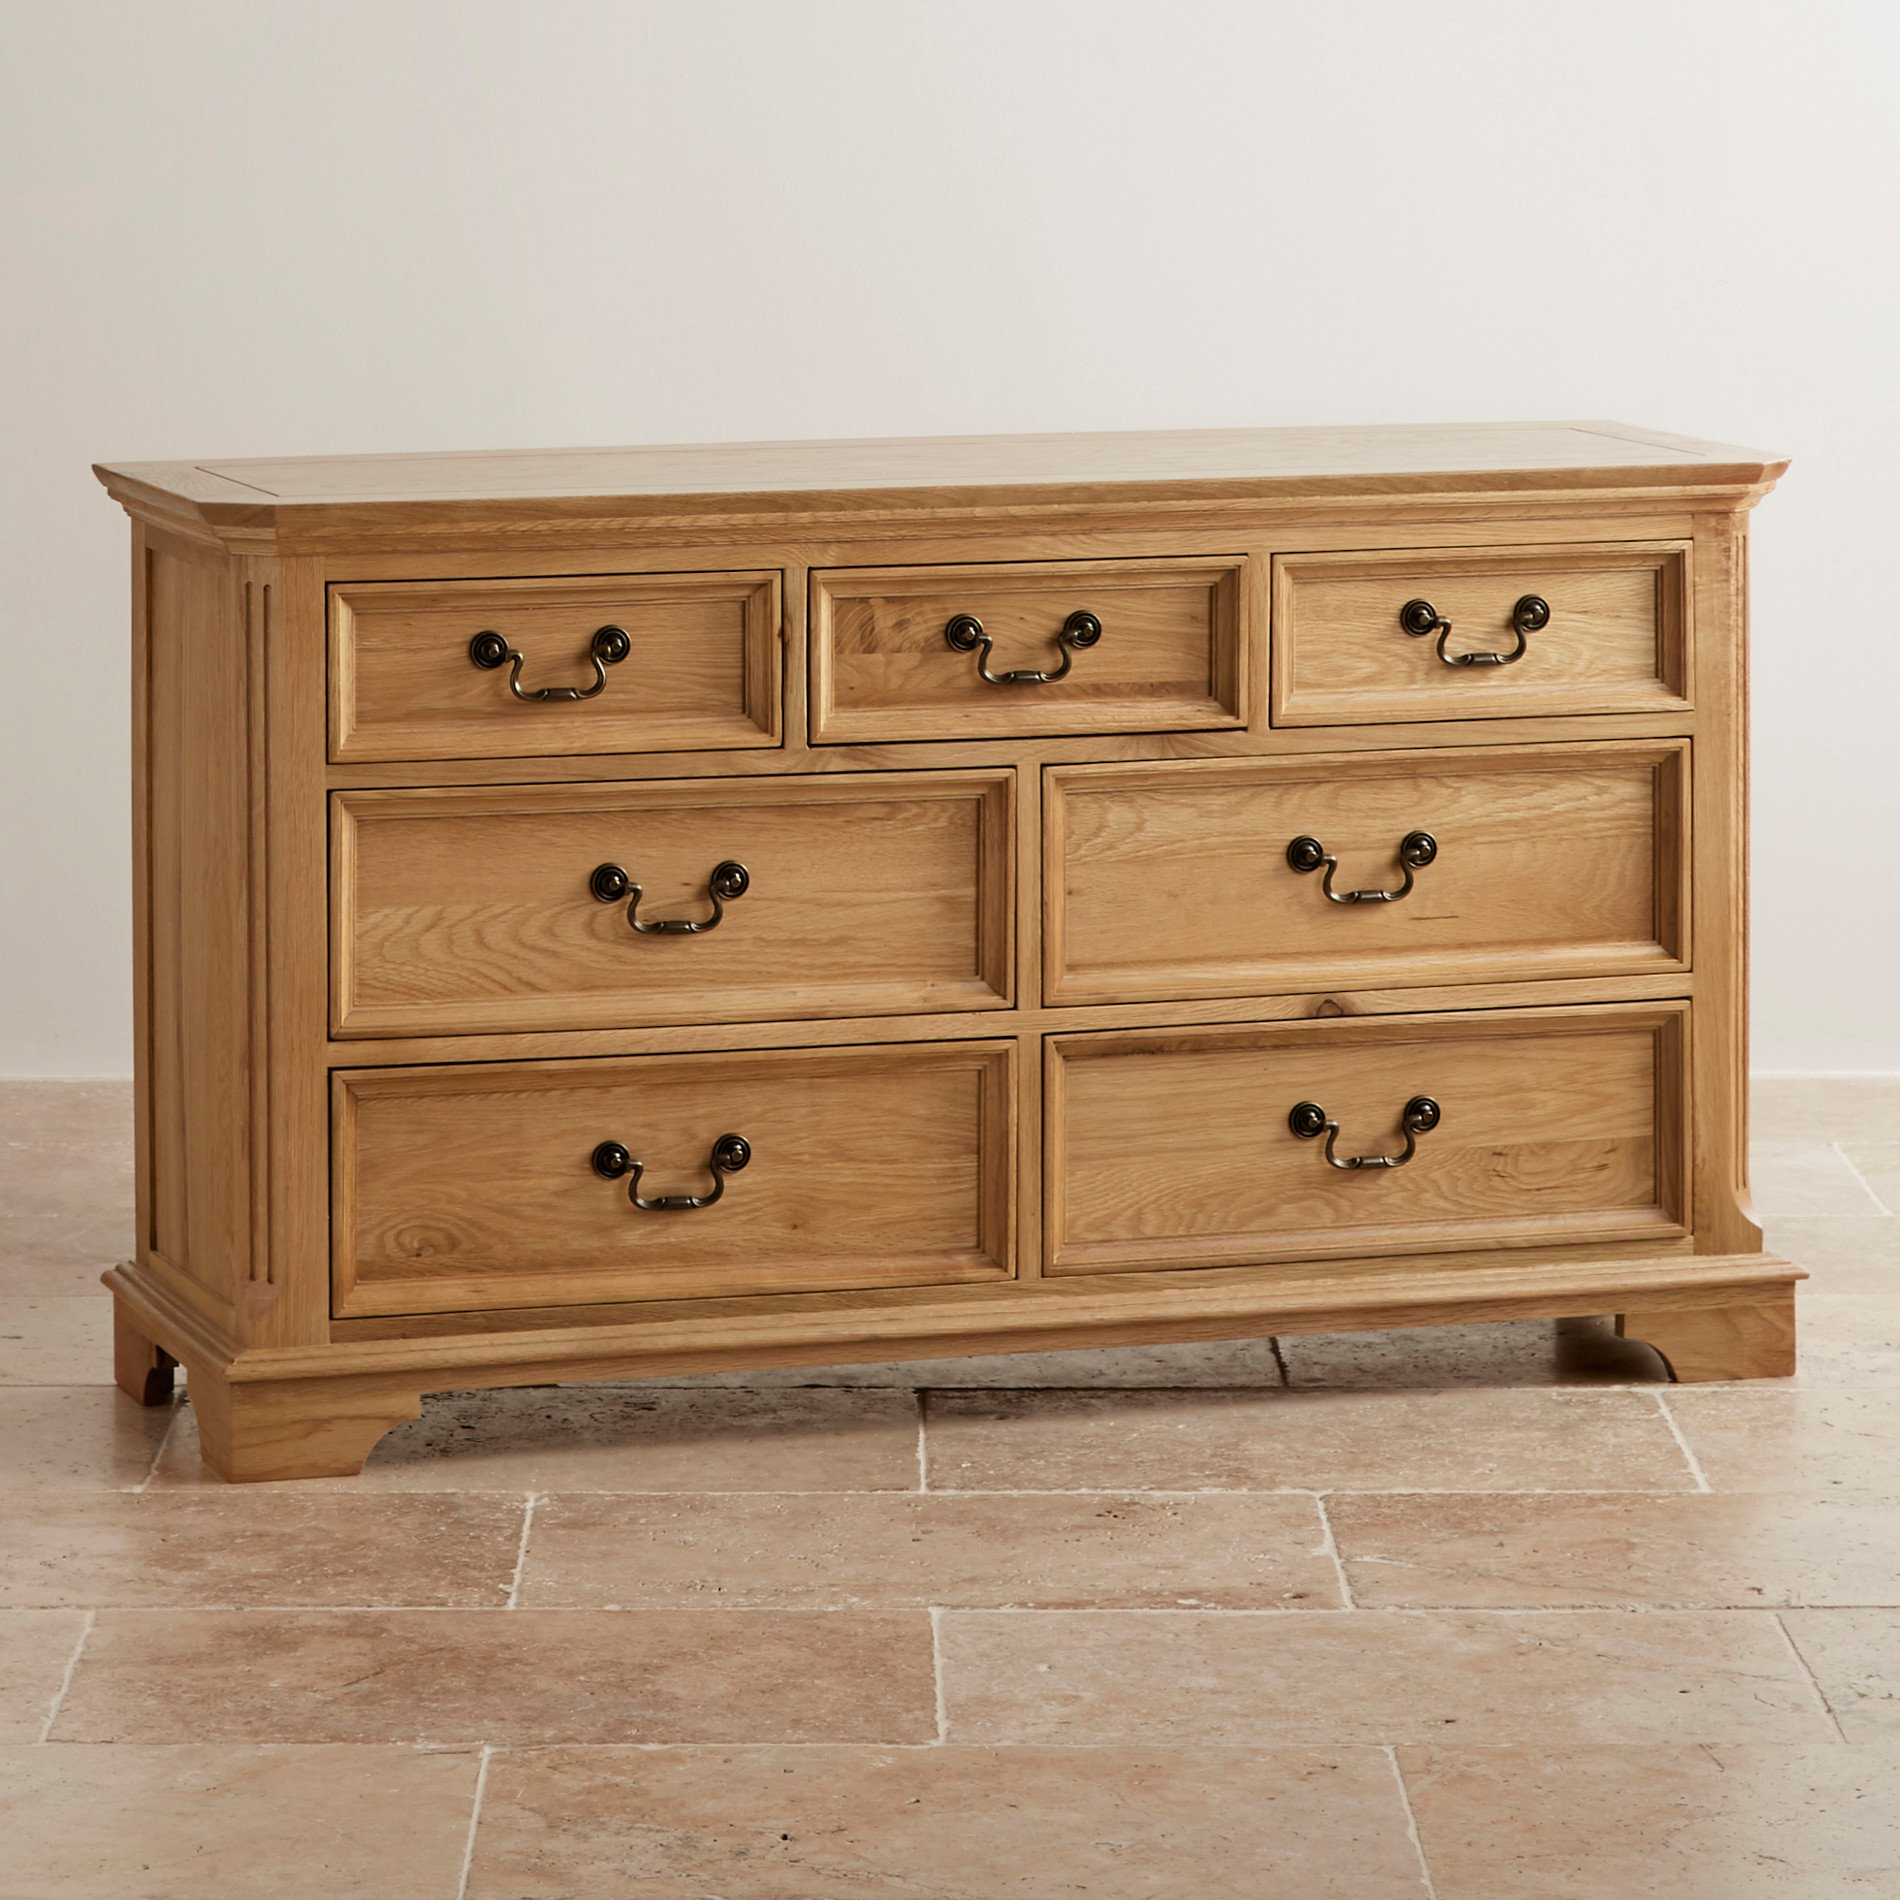 edinburgh natural solid oak 3 4 chest of drawers. Black Bedroom Furniture Sets. Home Design Ideas